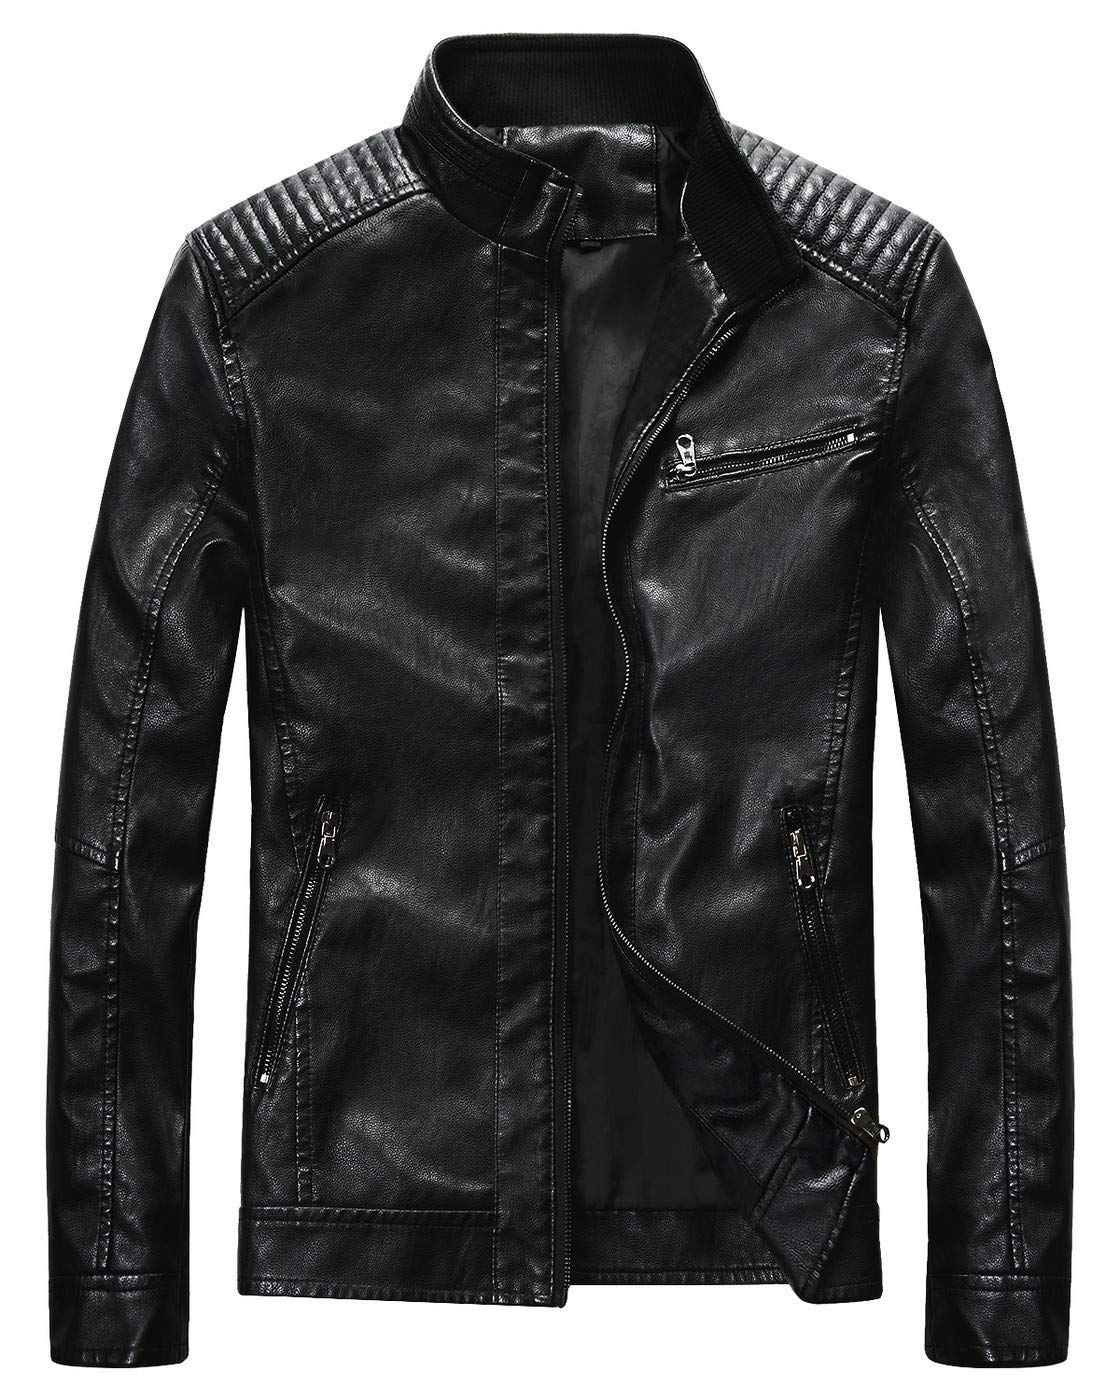 MILWAUKEE LEATHER Men's Classic Side Lace Police Style